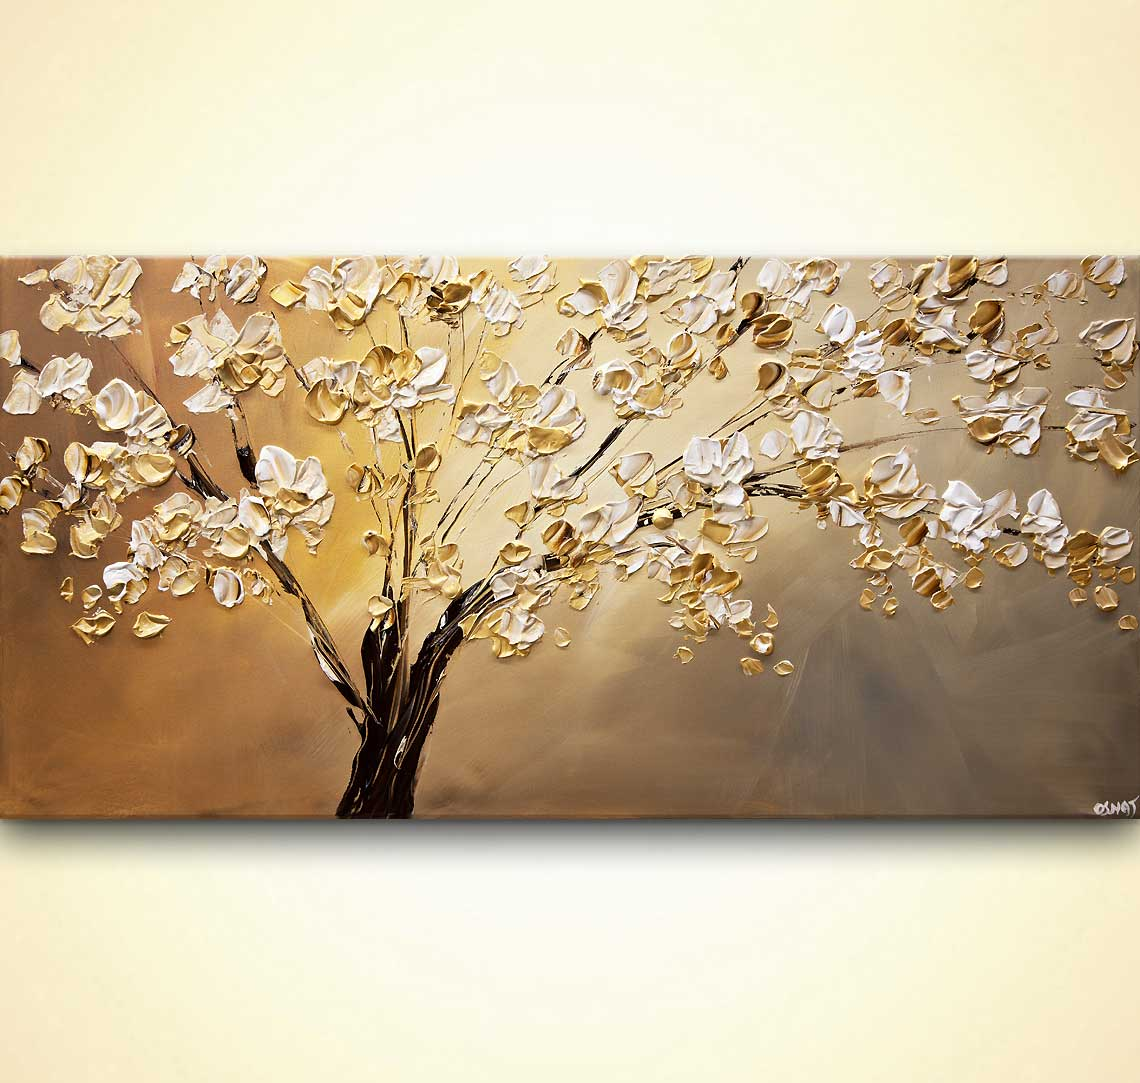 modern abstract art - The Golden Almond Tree